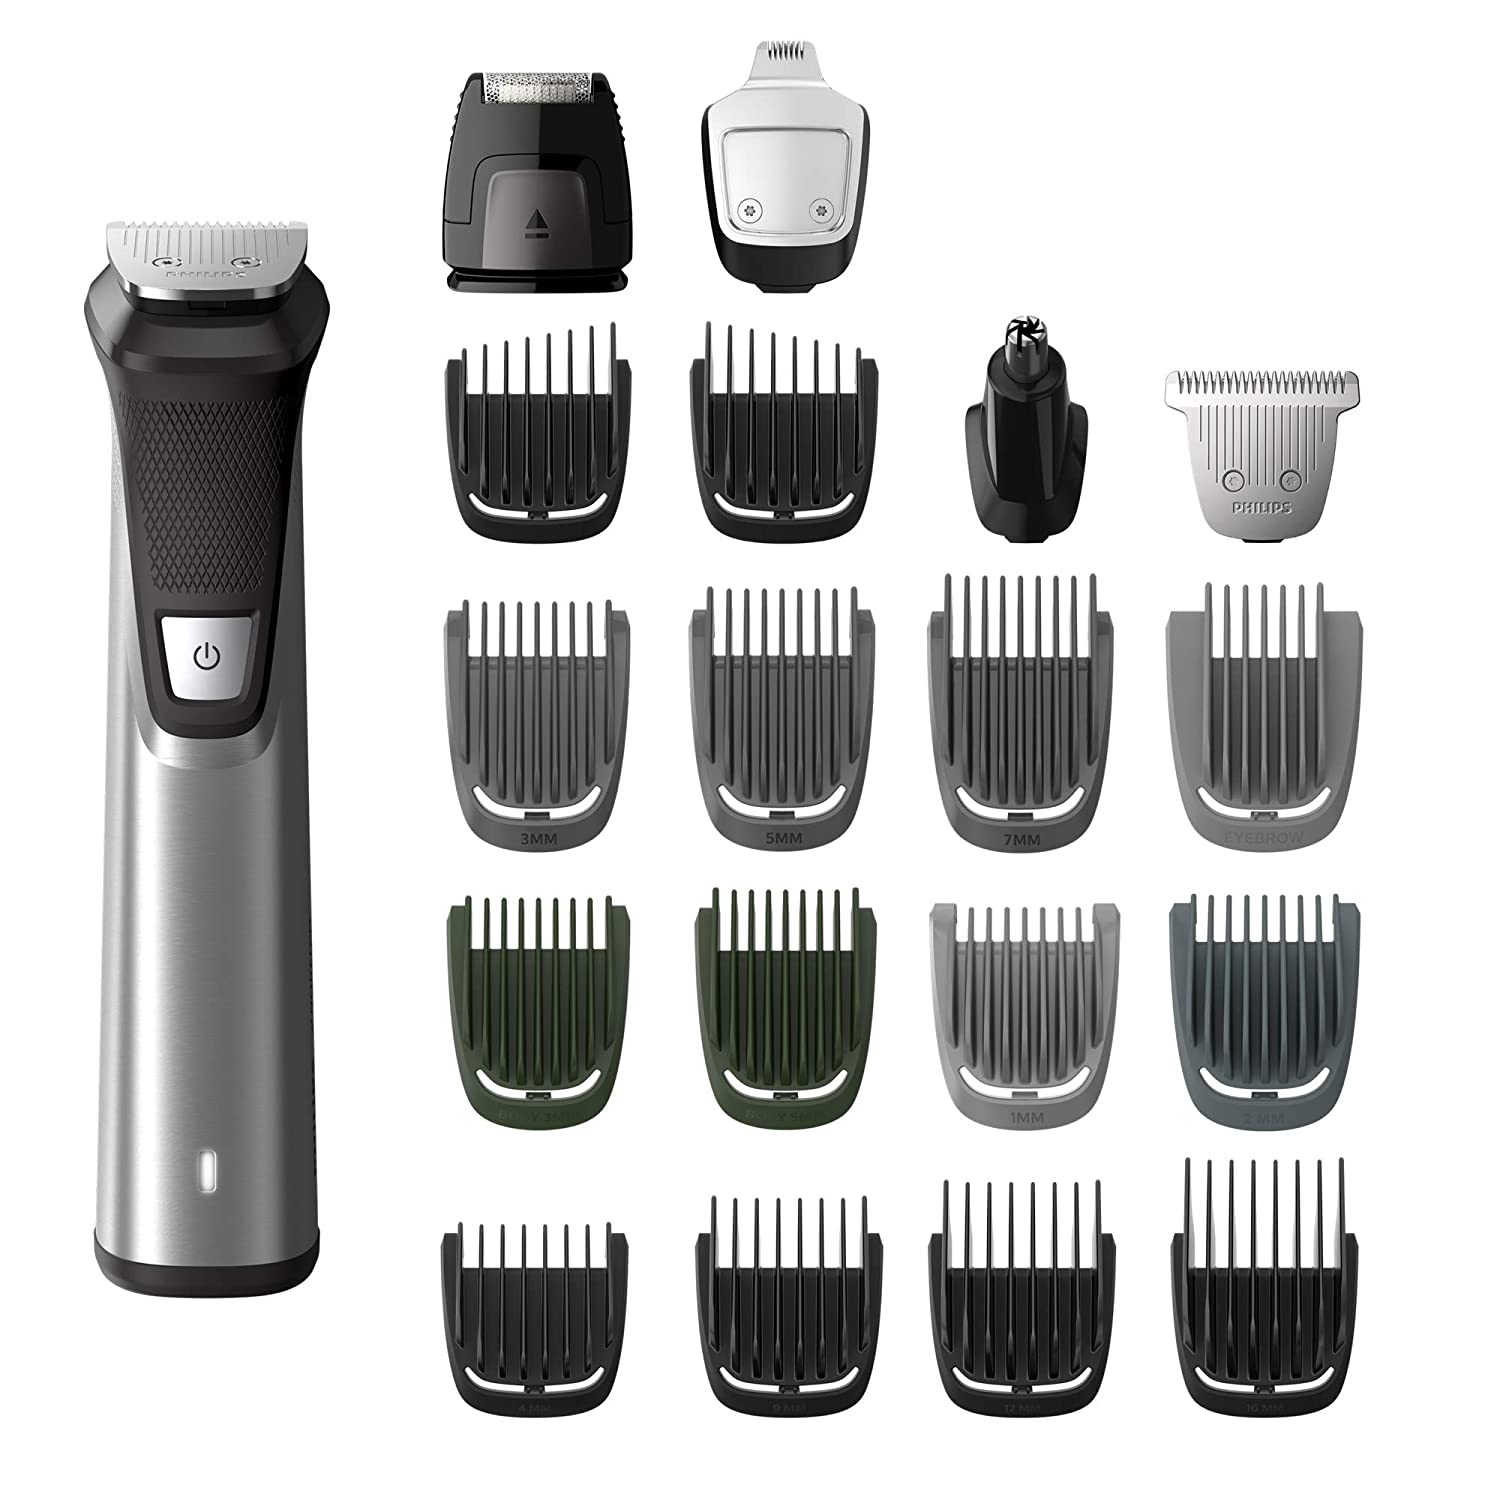 Philips Norelco Multigroom Series 7000 Men's Beard Grooming Kit